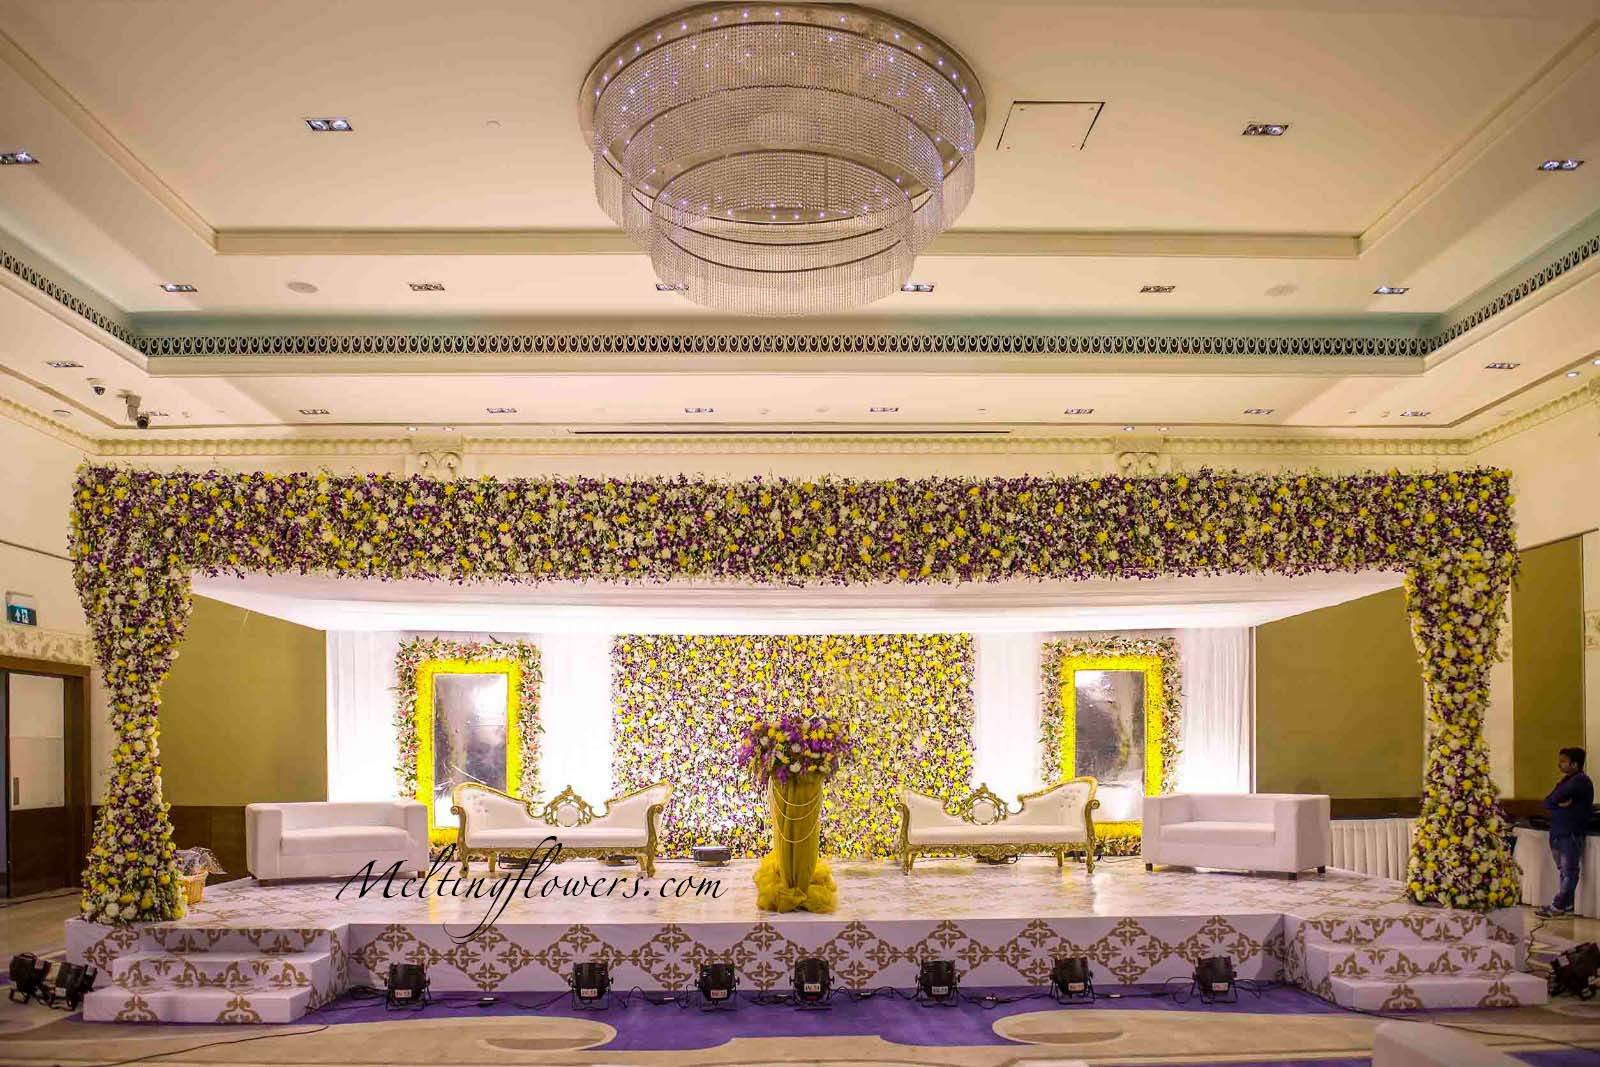 Uncategorized Wedding Reception Backdrop Decorations wedding backdrops backdrop decorations melting flowers reception stage decoration decoration